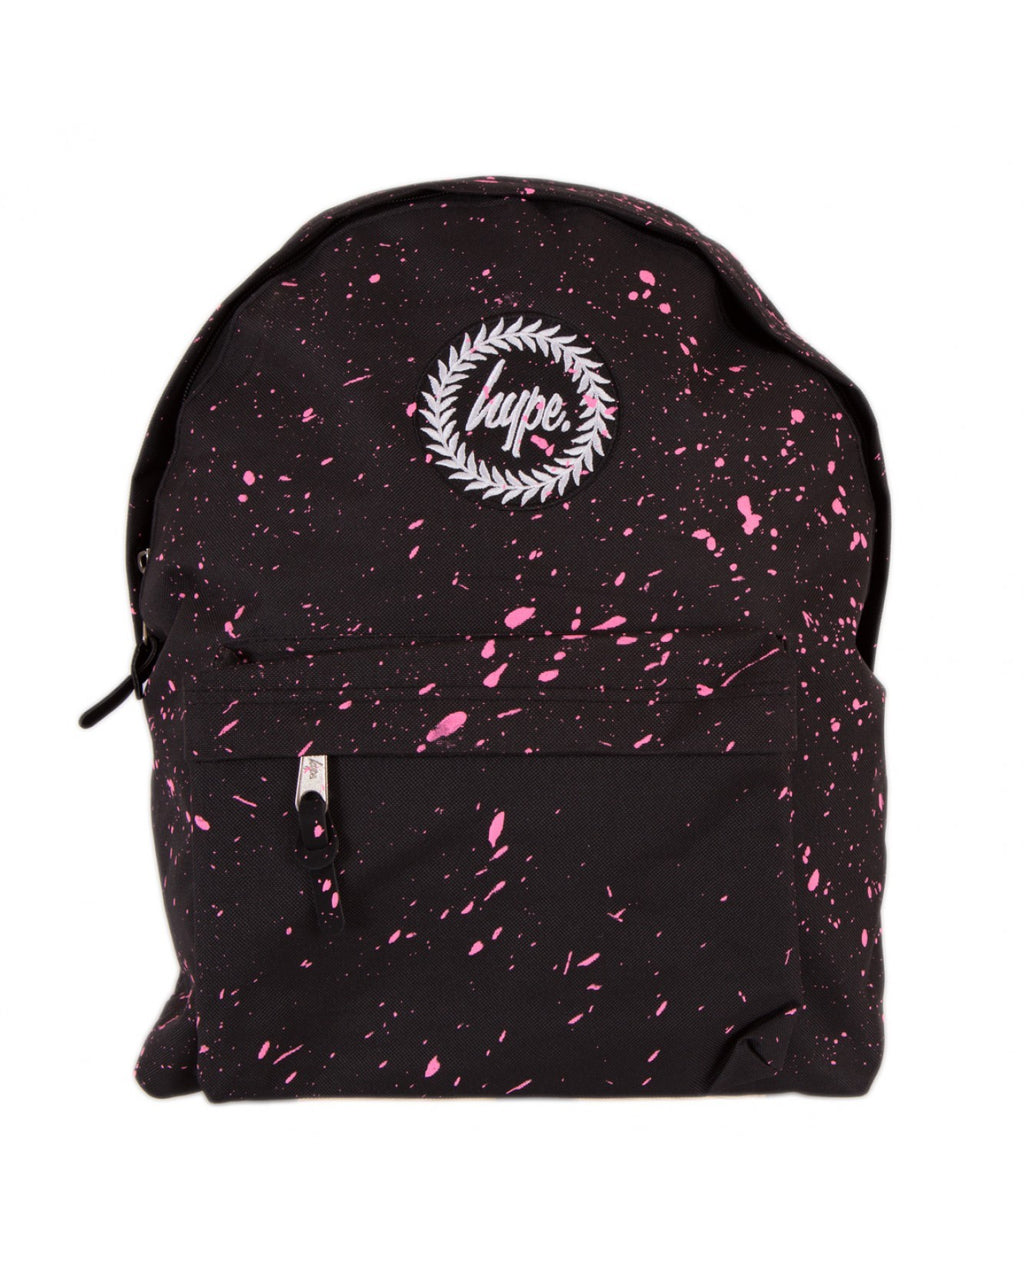 HYPE SPECKLE BACKPACK RUCKSACK BAG - BLACK/PINK